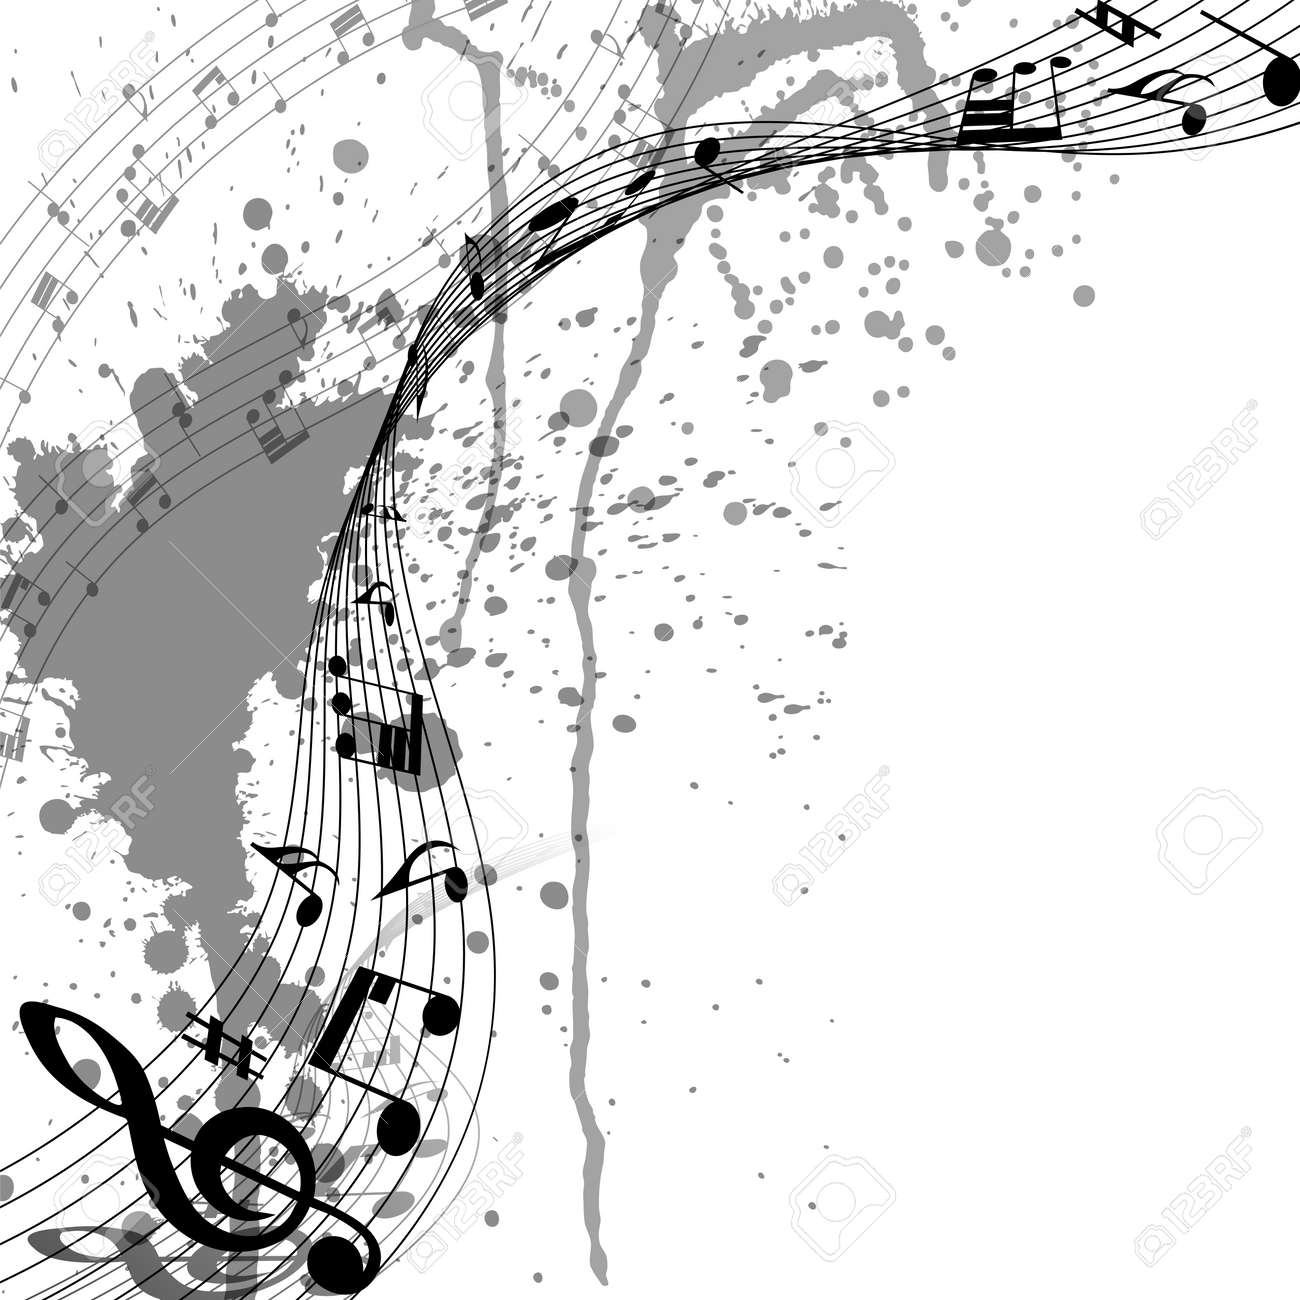 Musical Design From Music Staff Elements With Treble Clef And Notes On Trasparent Grunge Background With Copy Space. Shadow With Transparency; Elegant Creative Design Isolated on White. Vector Illustration. - 166074059